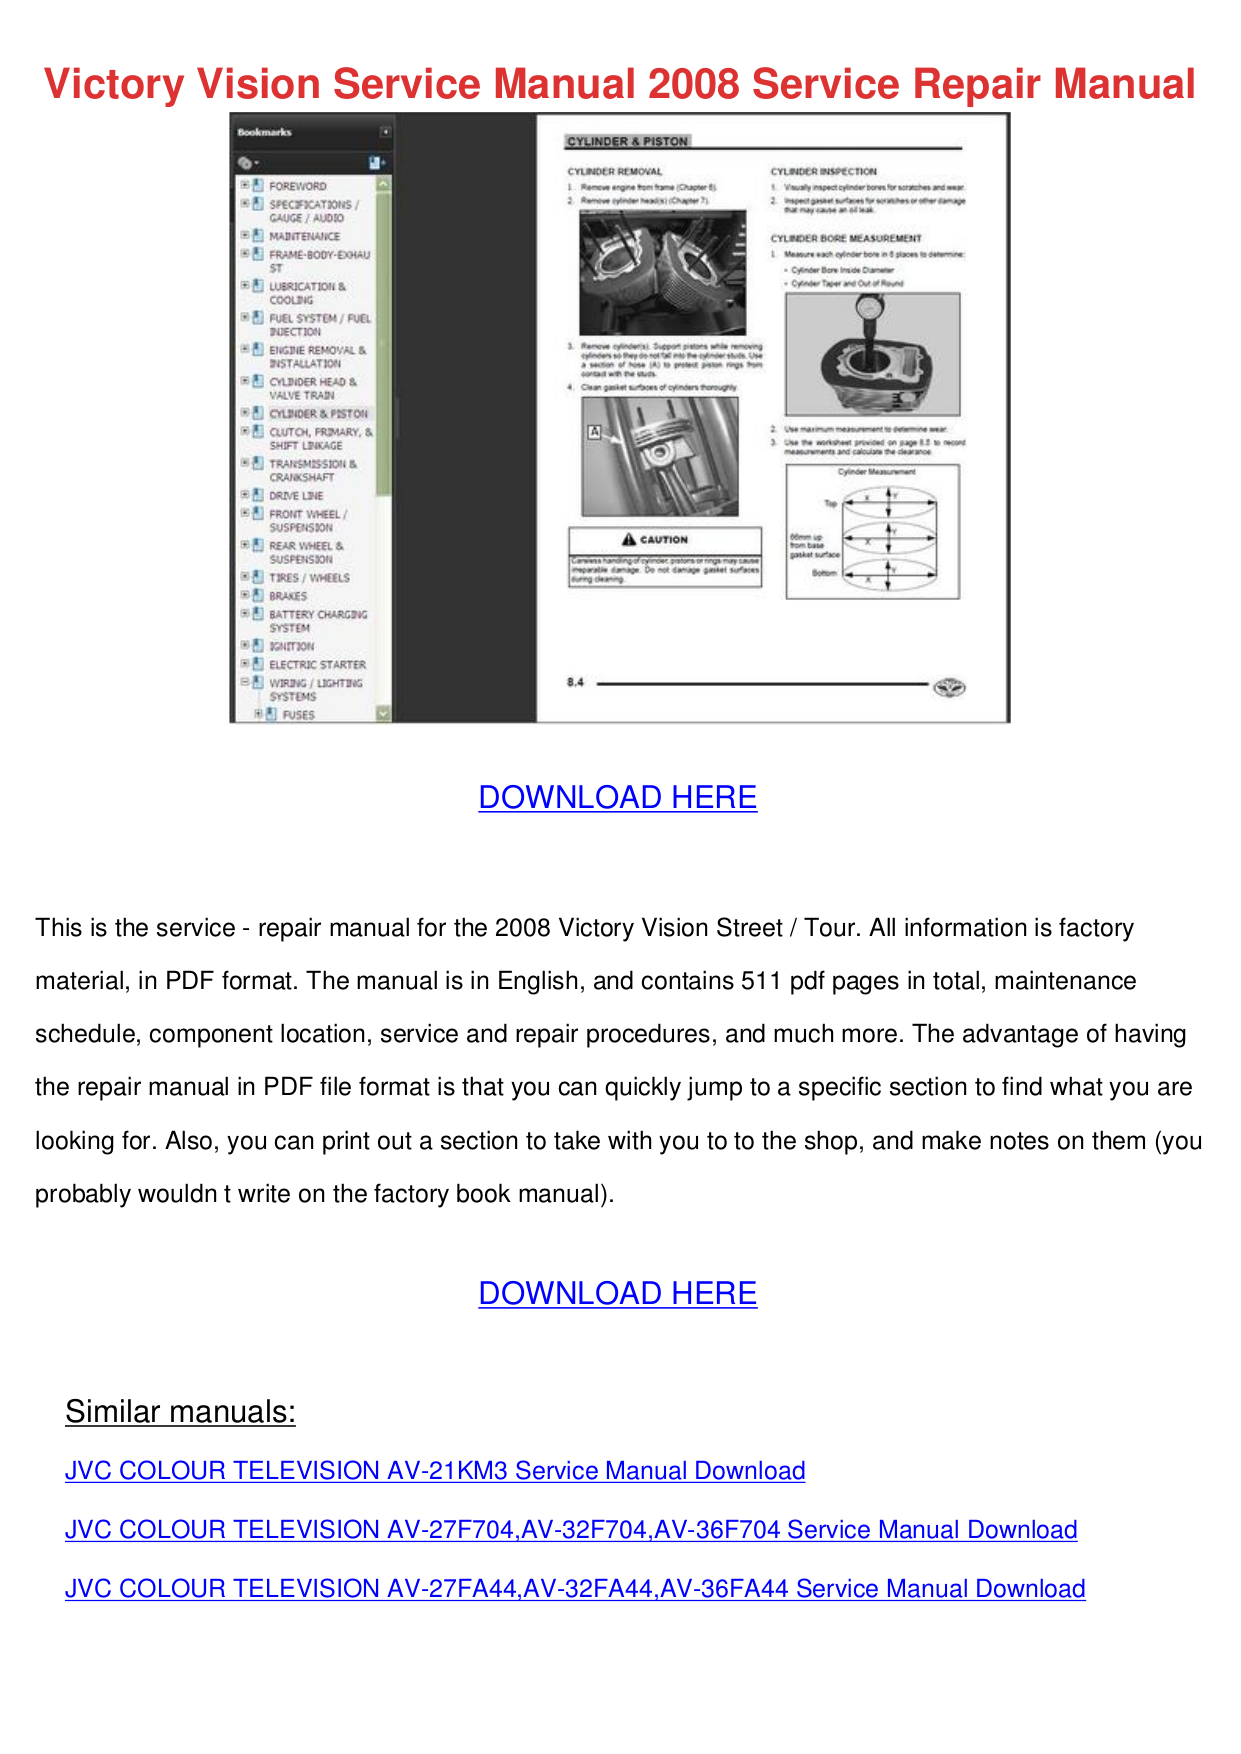 pdf for XOVision Car Video XOD1742BT manual